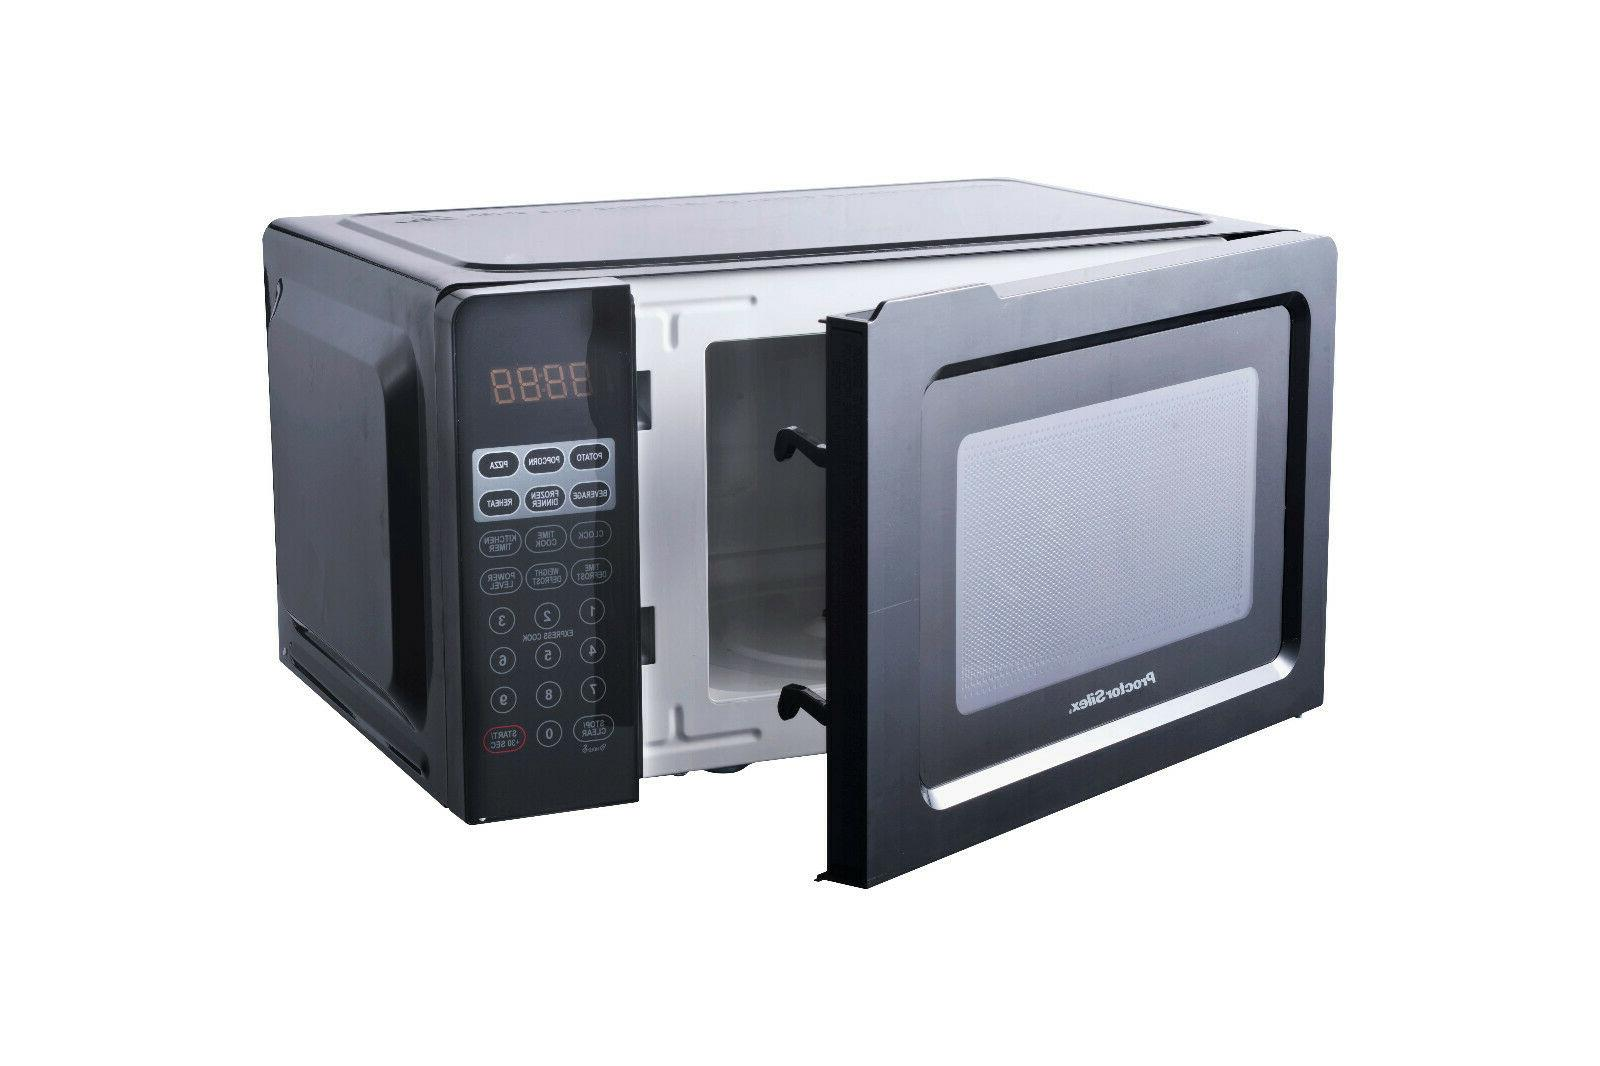 Digital Oven Home Small Appliance New